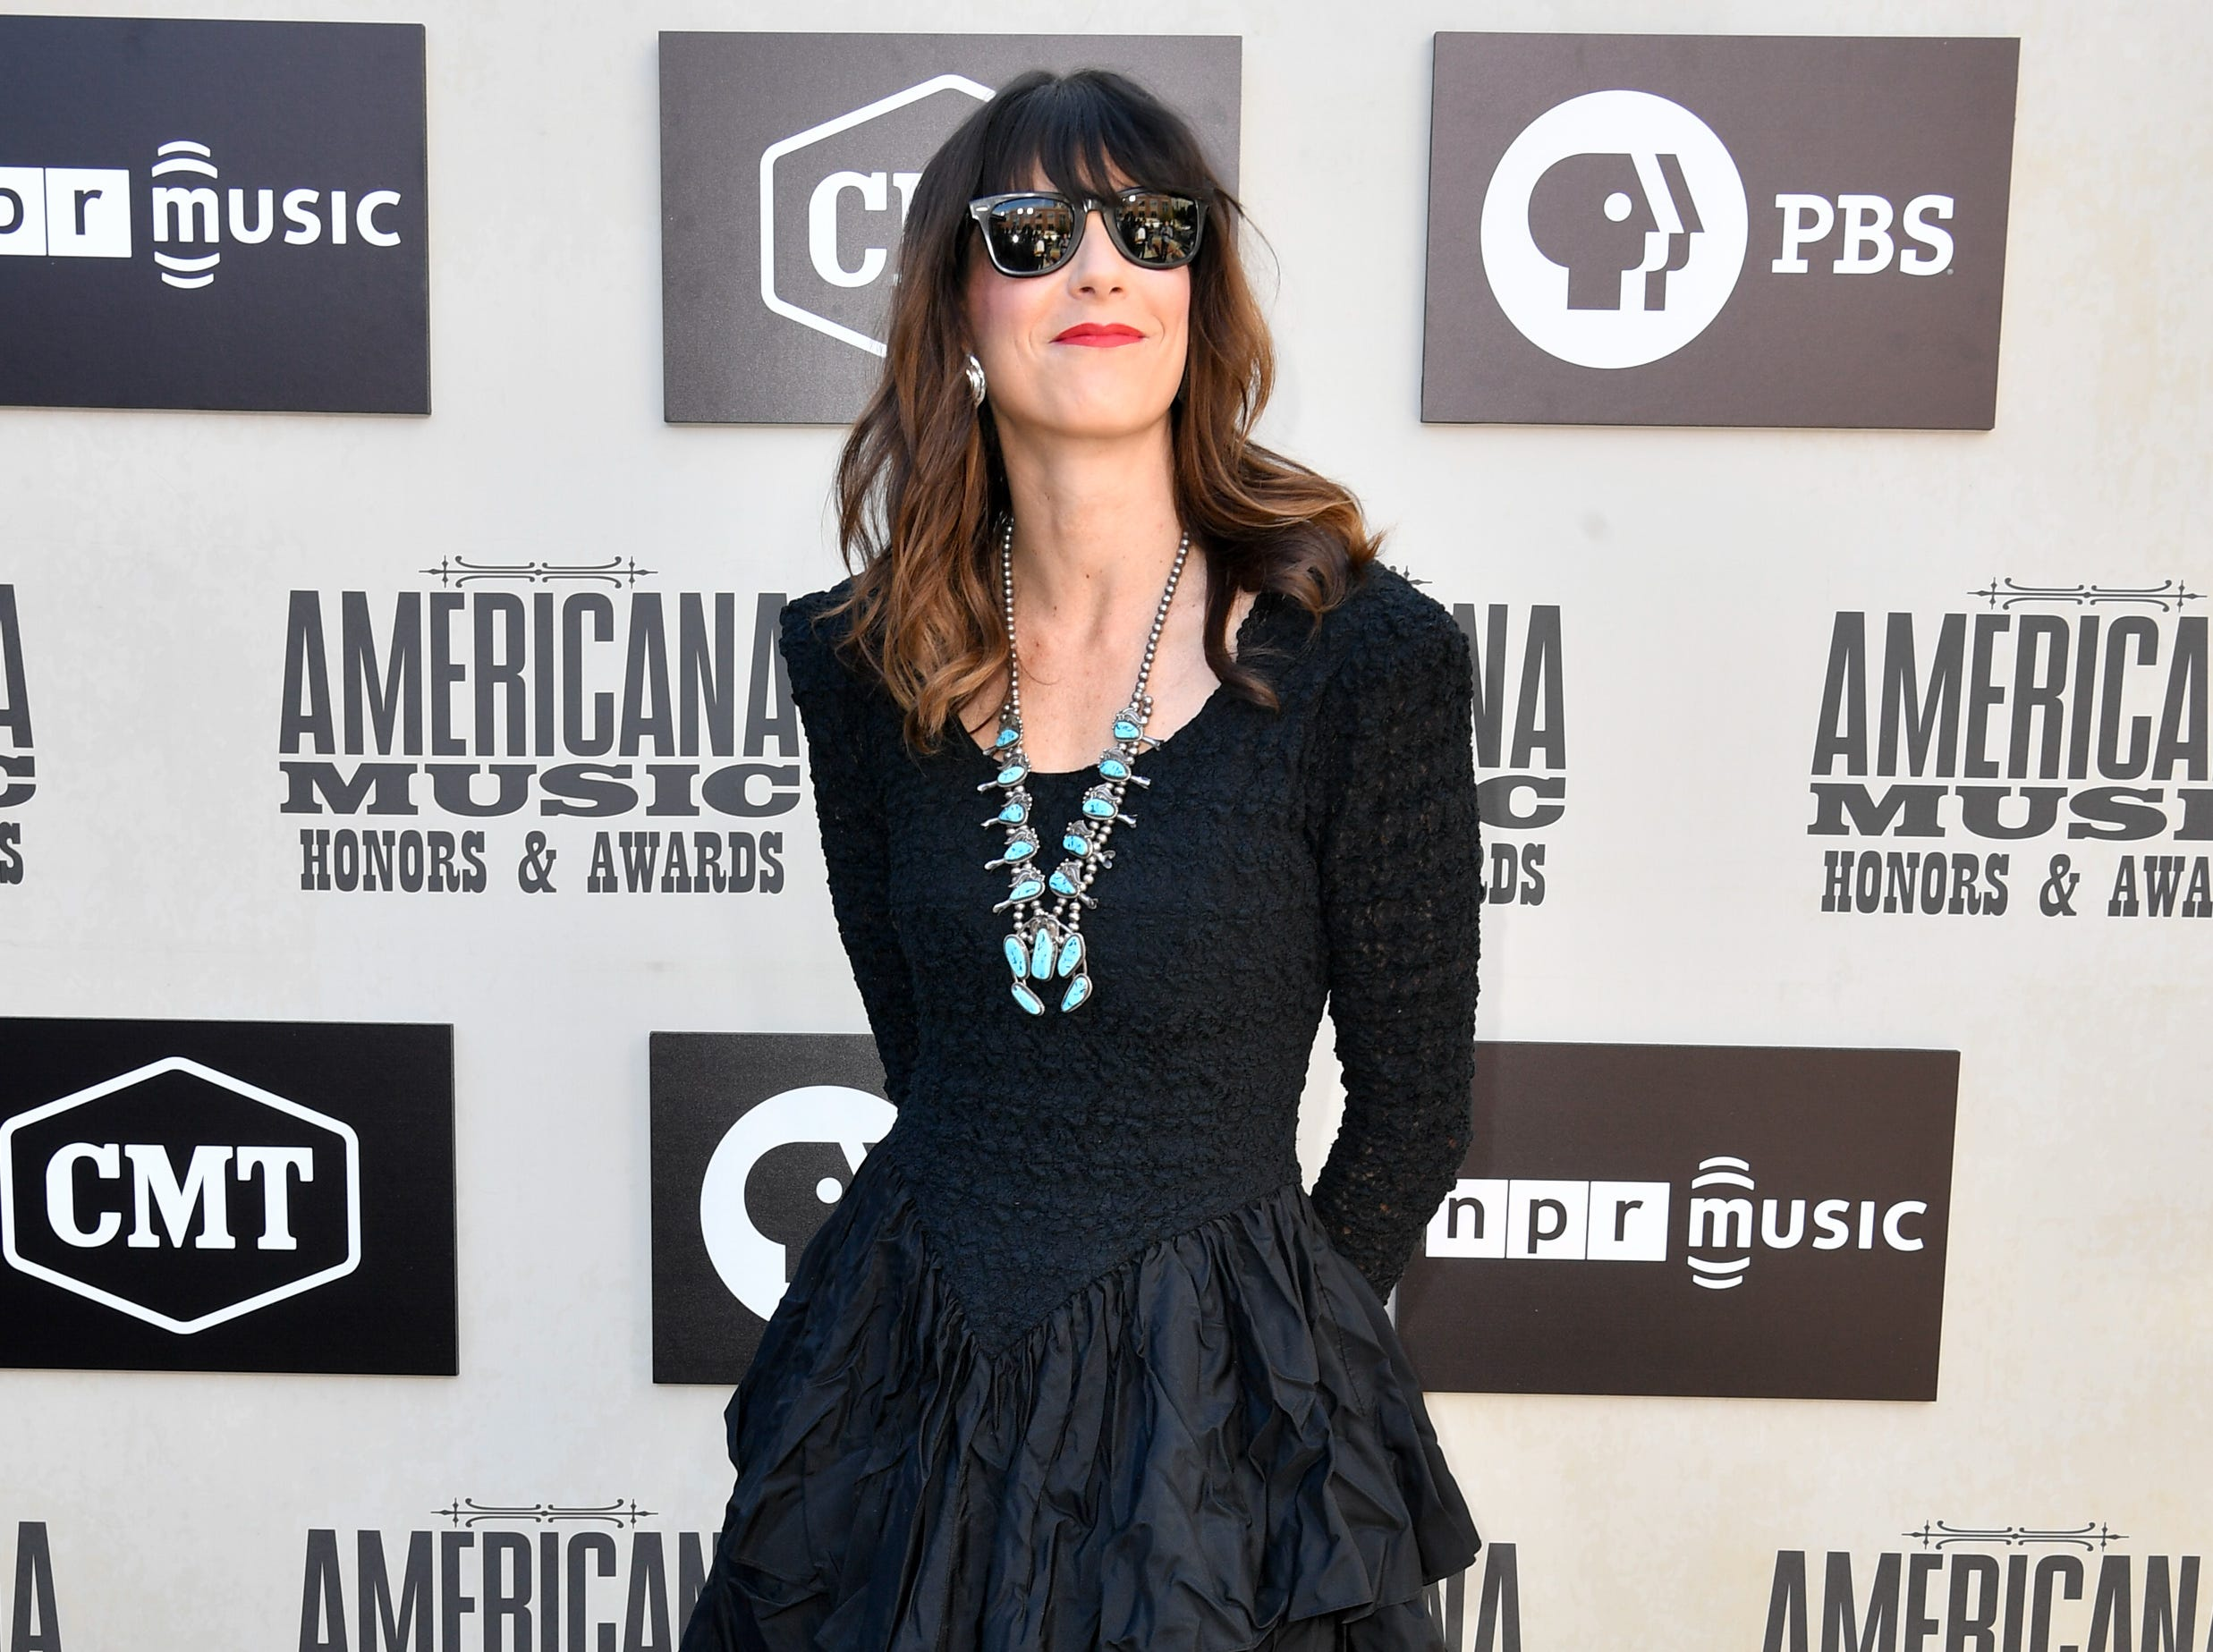 Nicki Bluhm poses on the red carpet before the 2018 Americana Honors and Awards show at the Ryman Auditorium in Nashville, Tenn., Wednesday, Sept. 12, 2018.